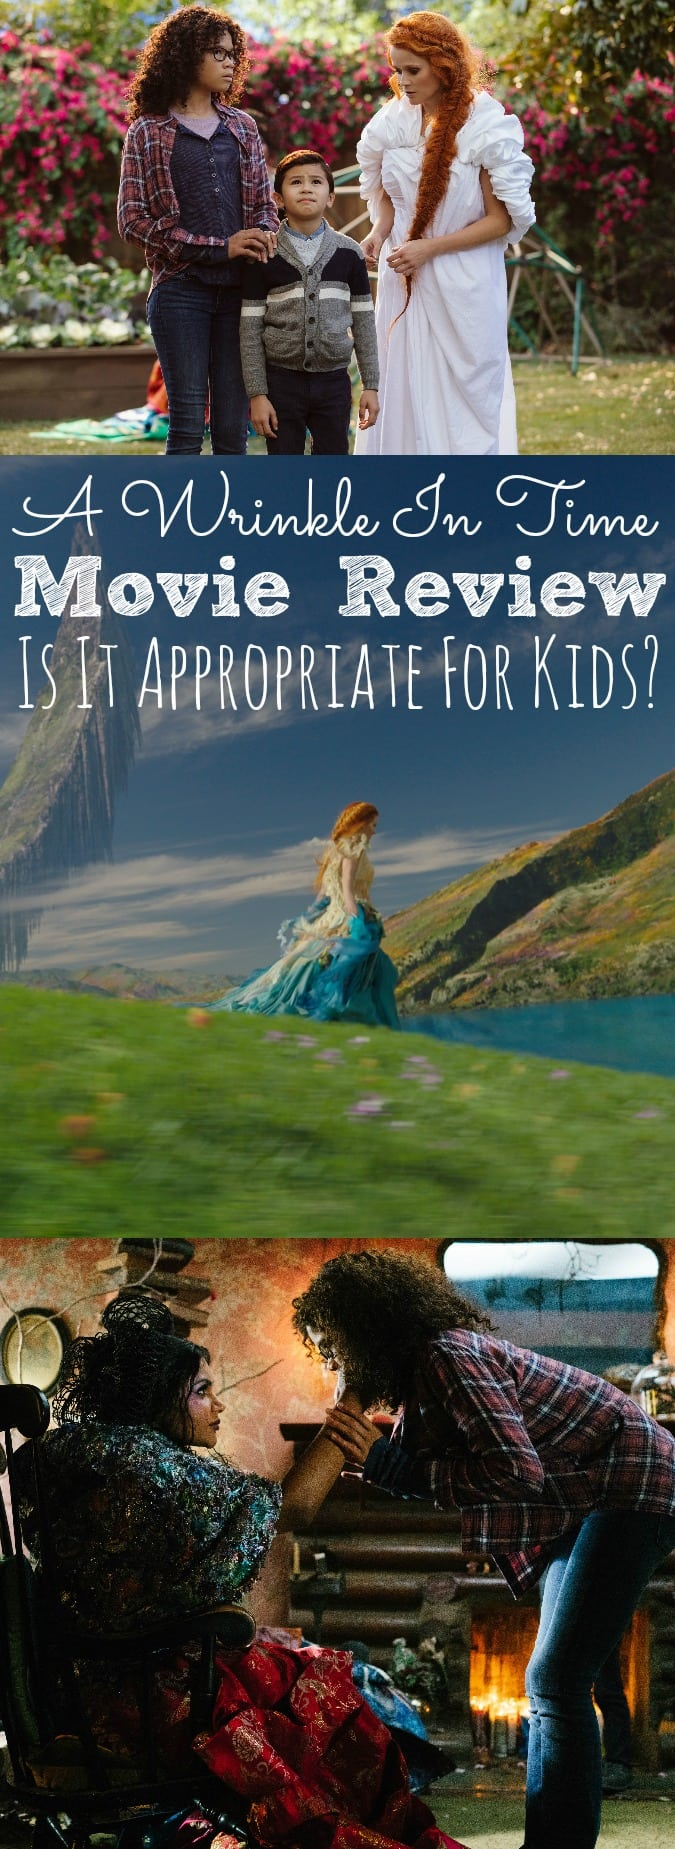 A Wrinkle In Time Movie Review Is It Appropriate For Kids